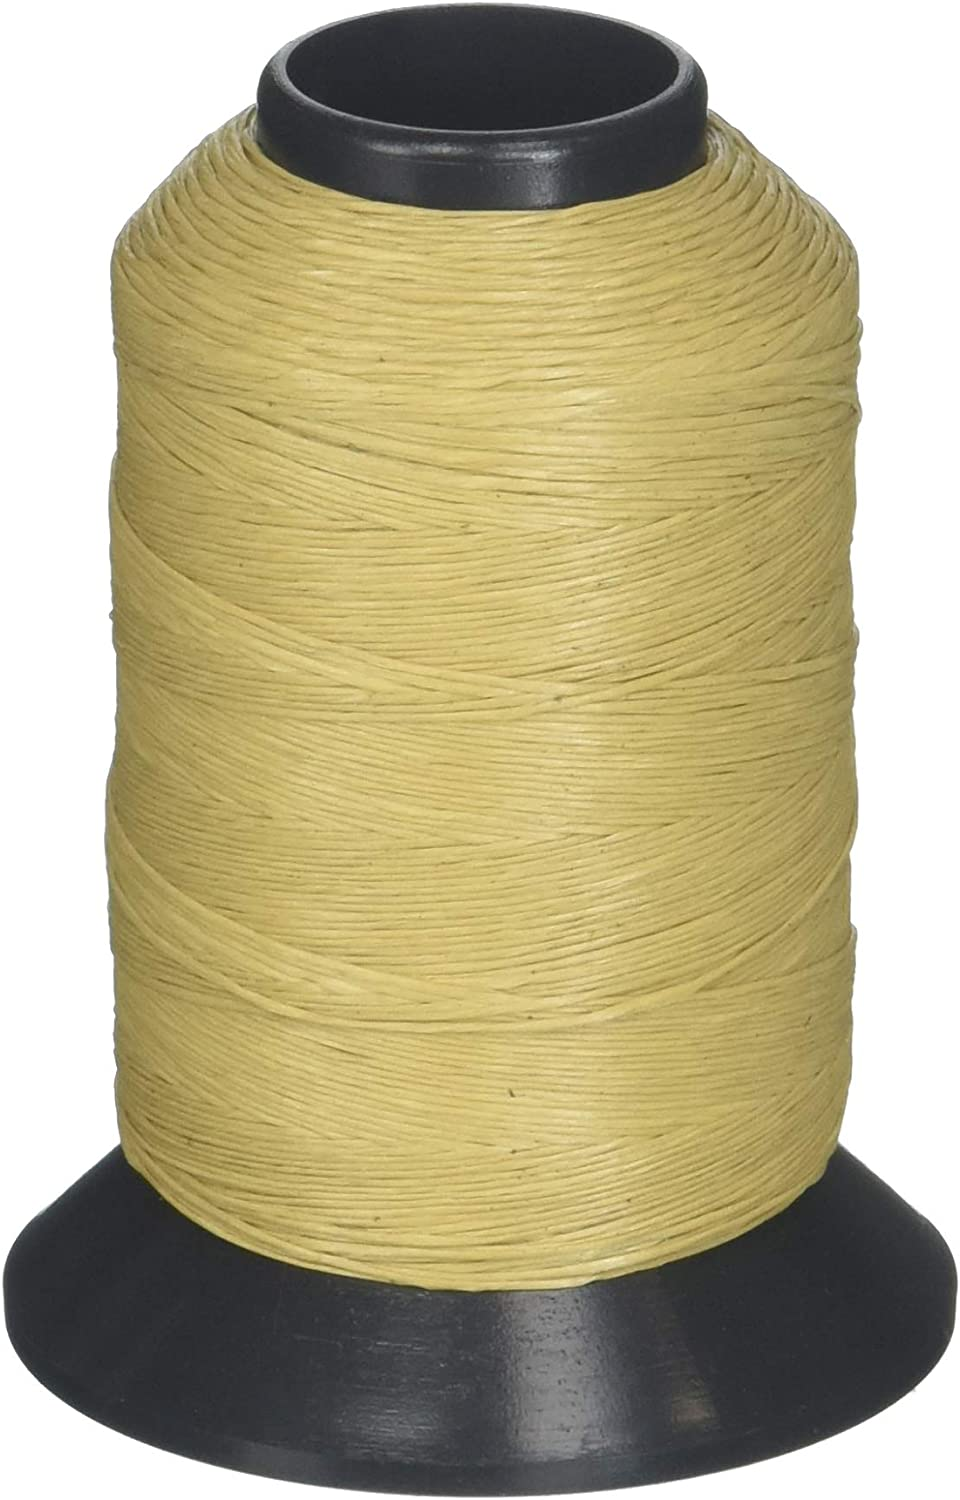 110m//Roll Waxed Twisted Cord Bow String Material Archery BowString Making Thread